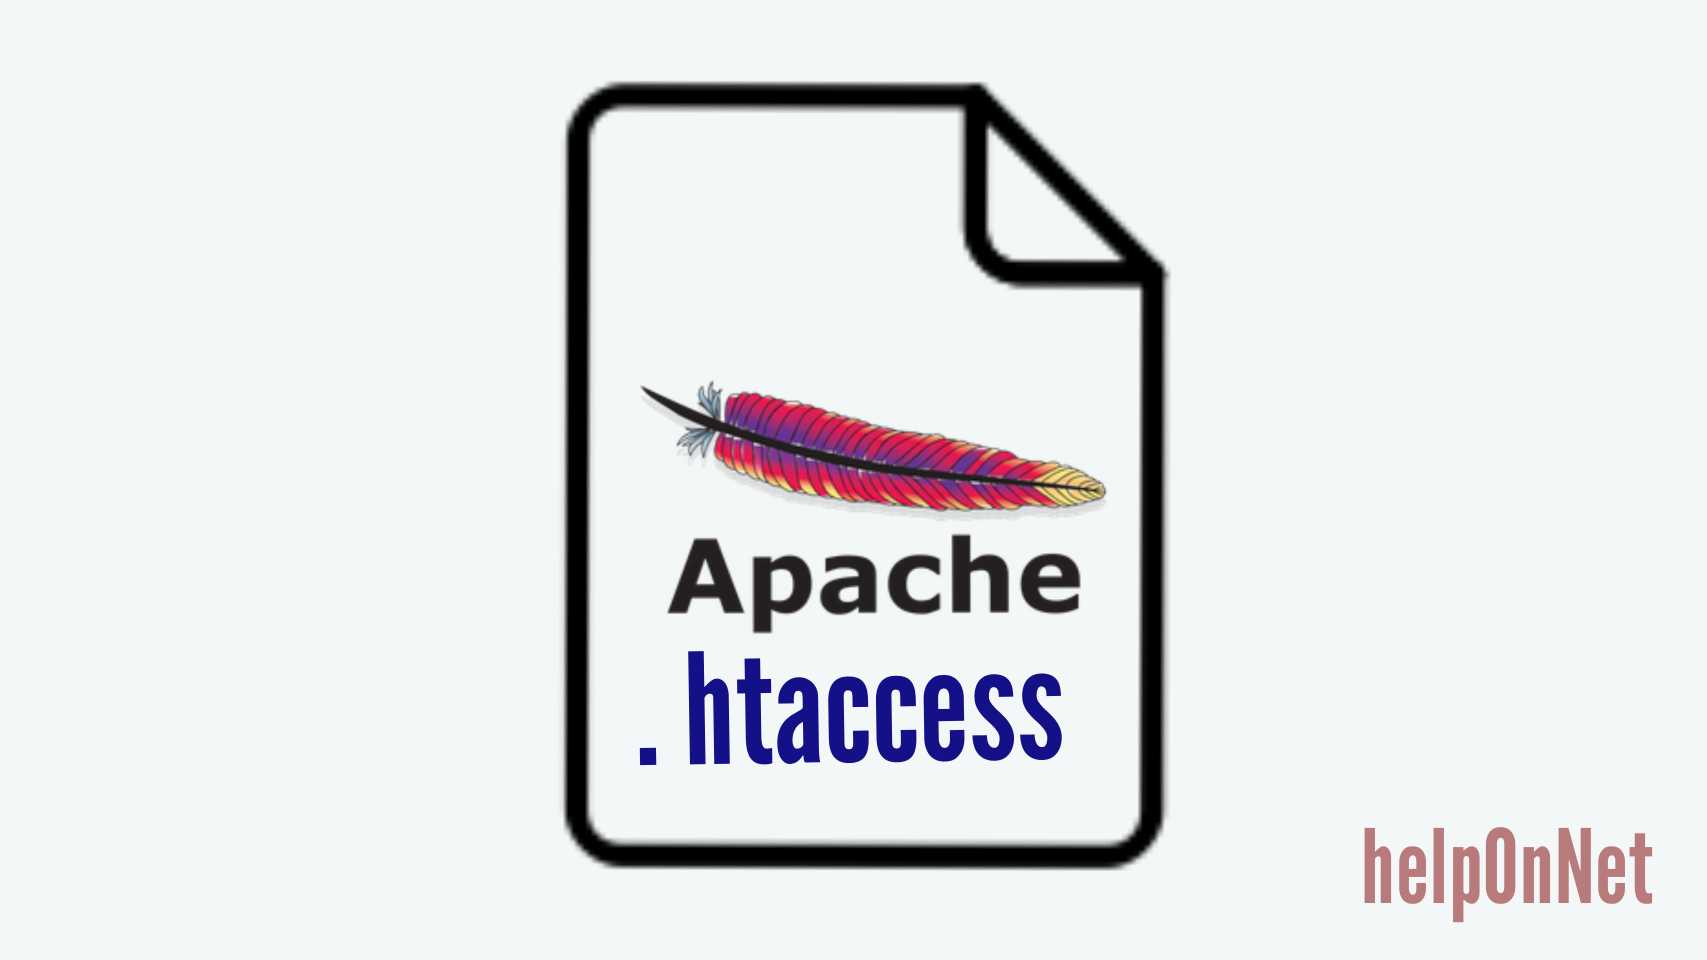 What is an htaccess file